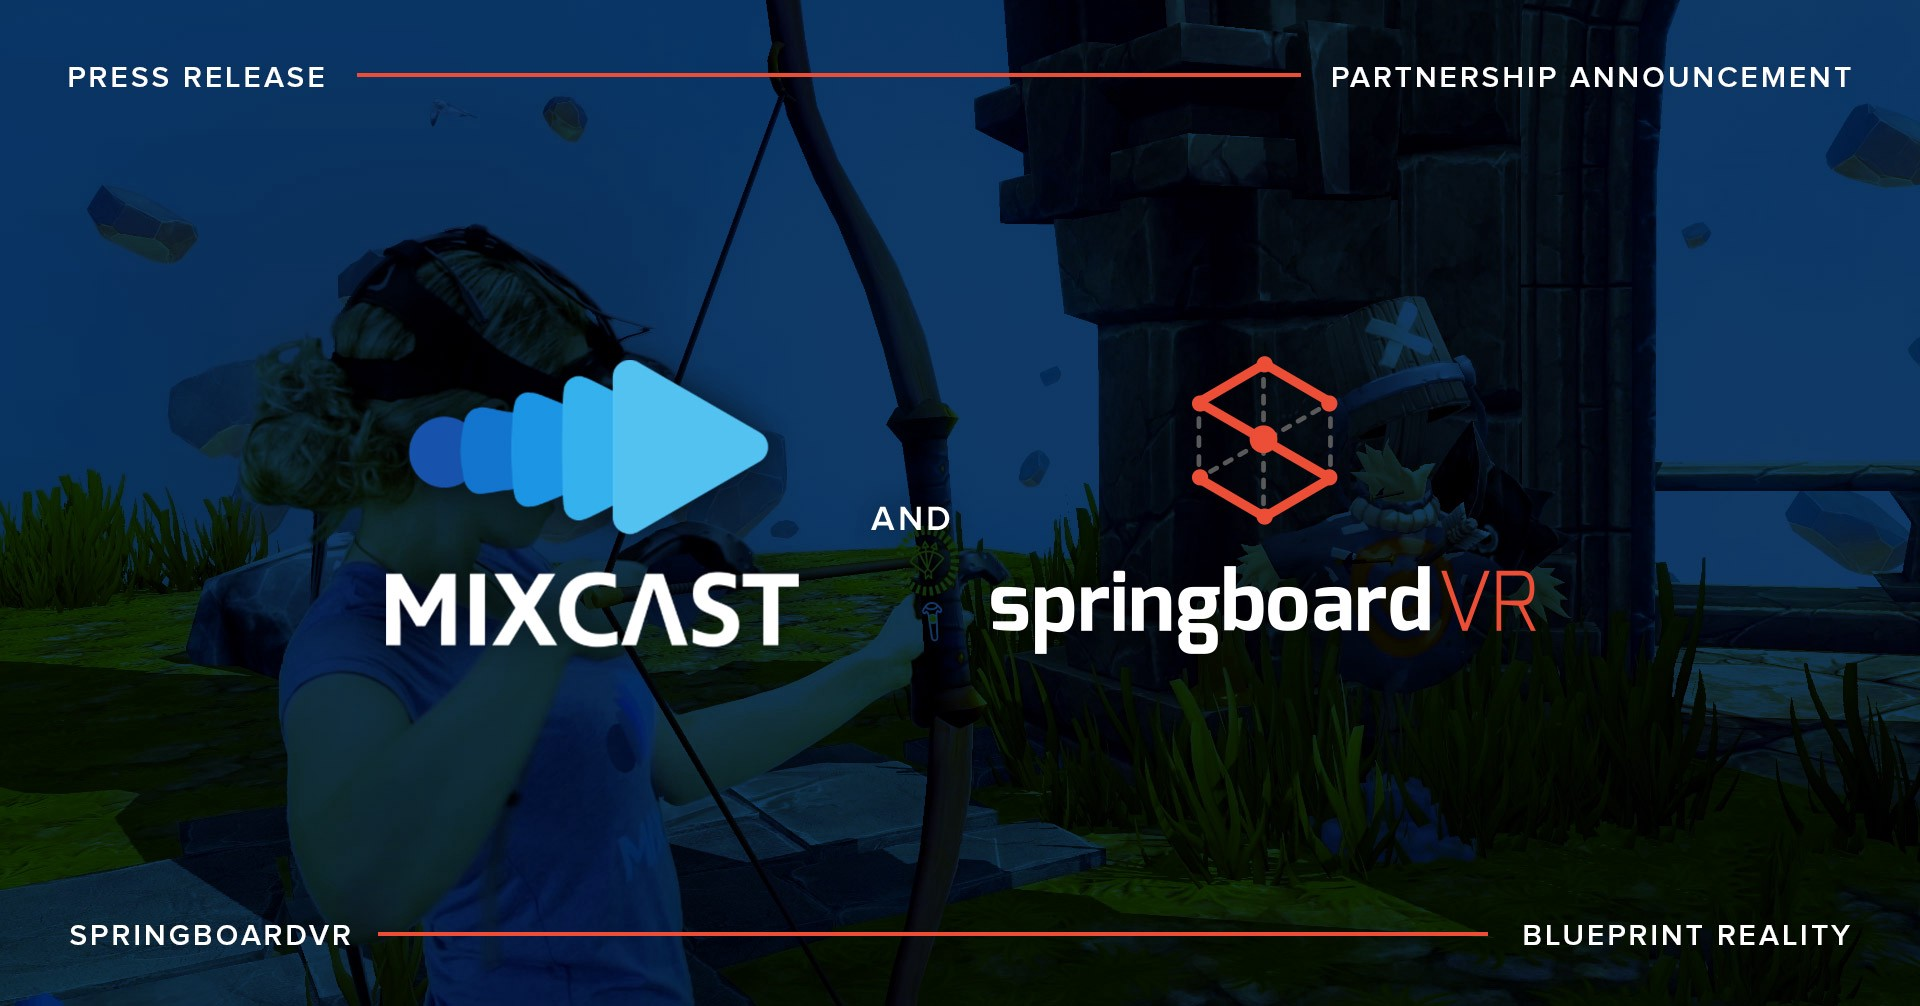 Blueprint Reality Partners with SpringboardVR